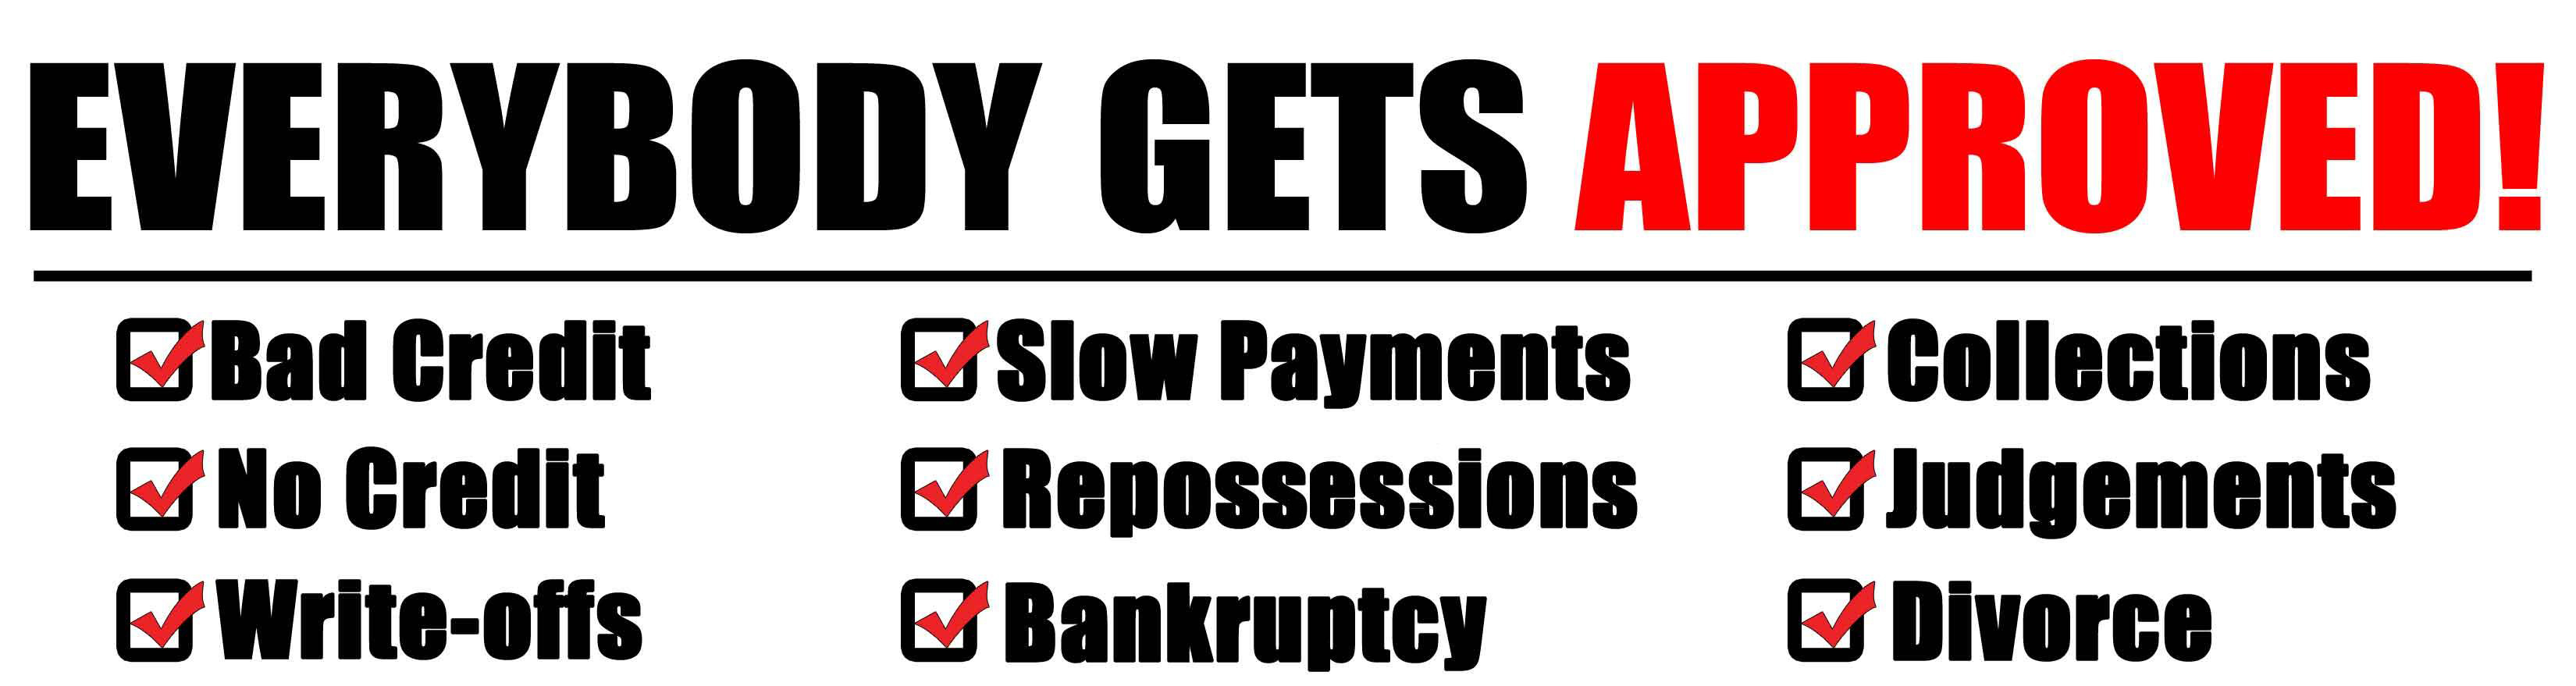 Buy Here Pay Here Loans Offer Guaranteed Financing For Everyone